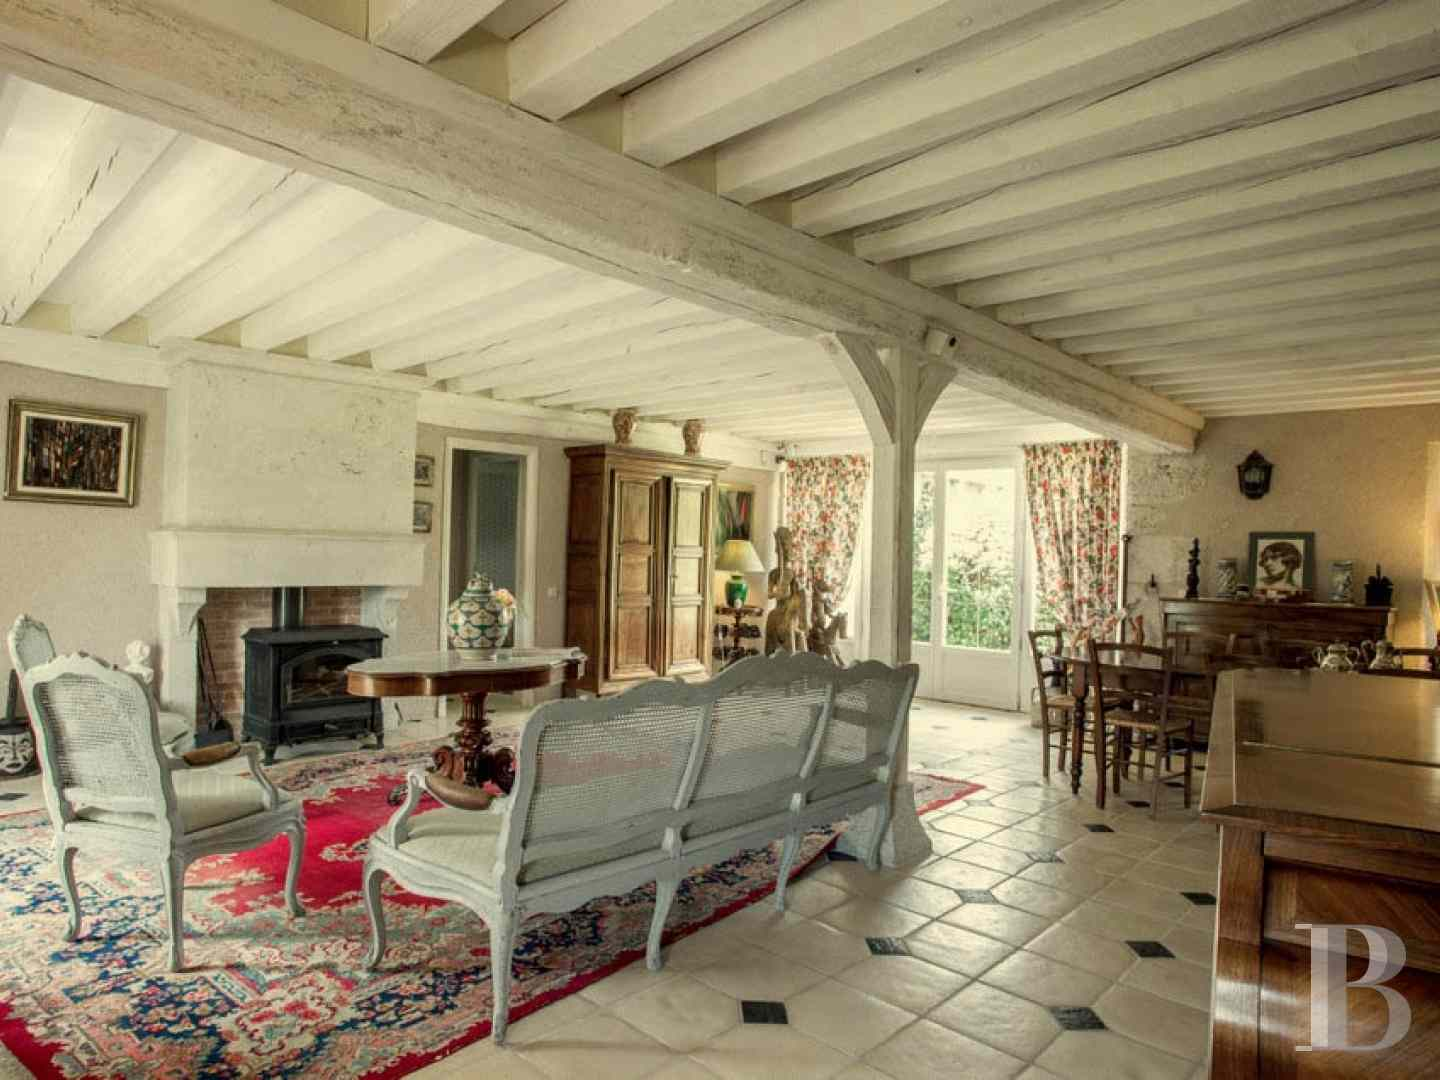 property for sale France center val de loire residences character - 5 zoom